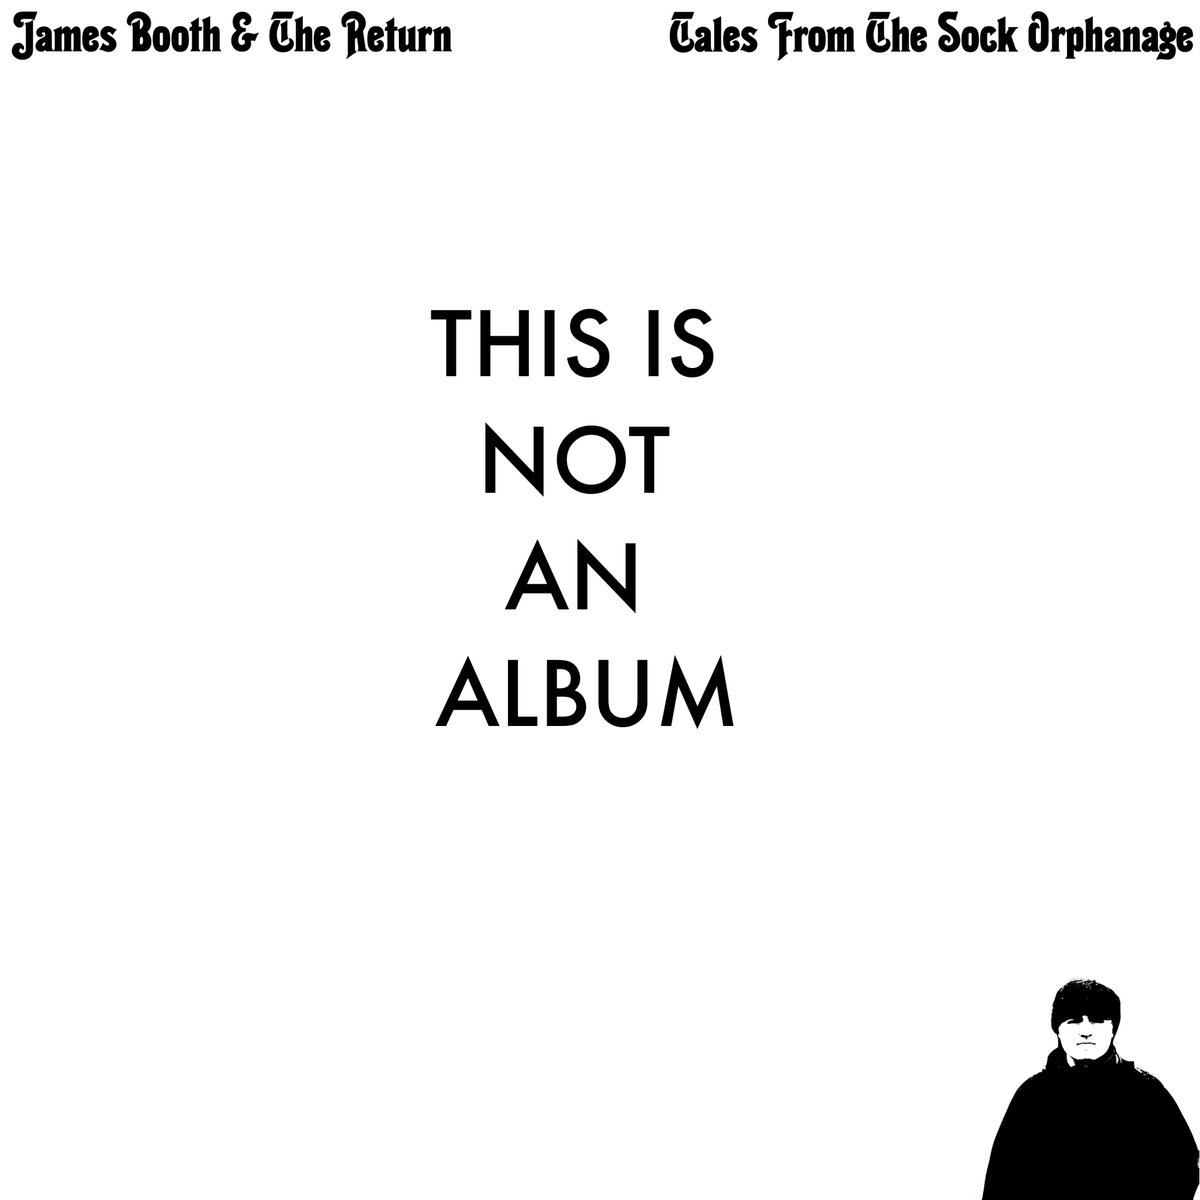 James Booth & The Return - @JBoothandReturn Twitter Profile and